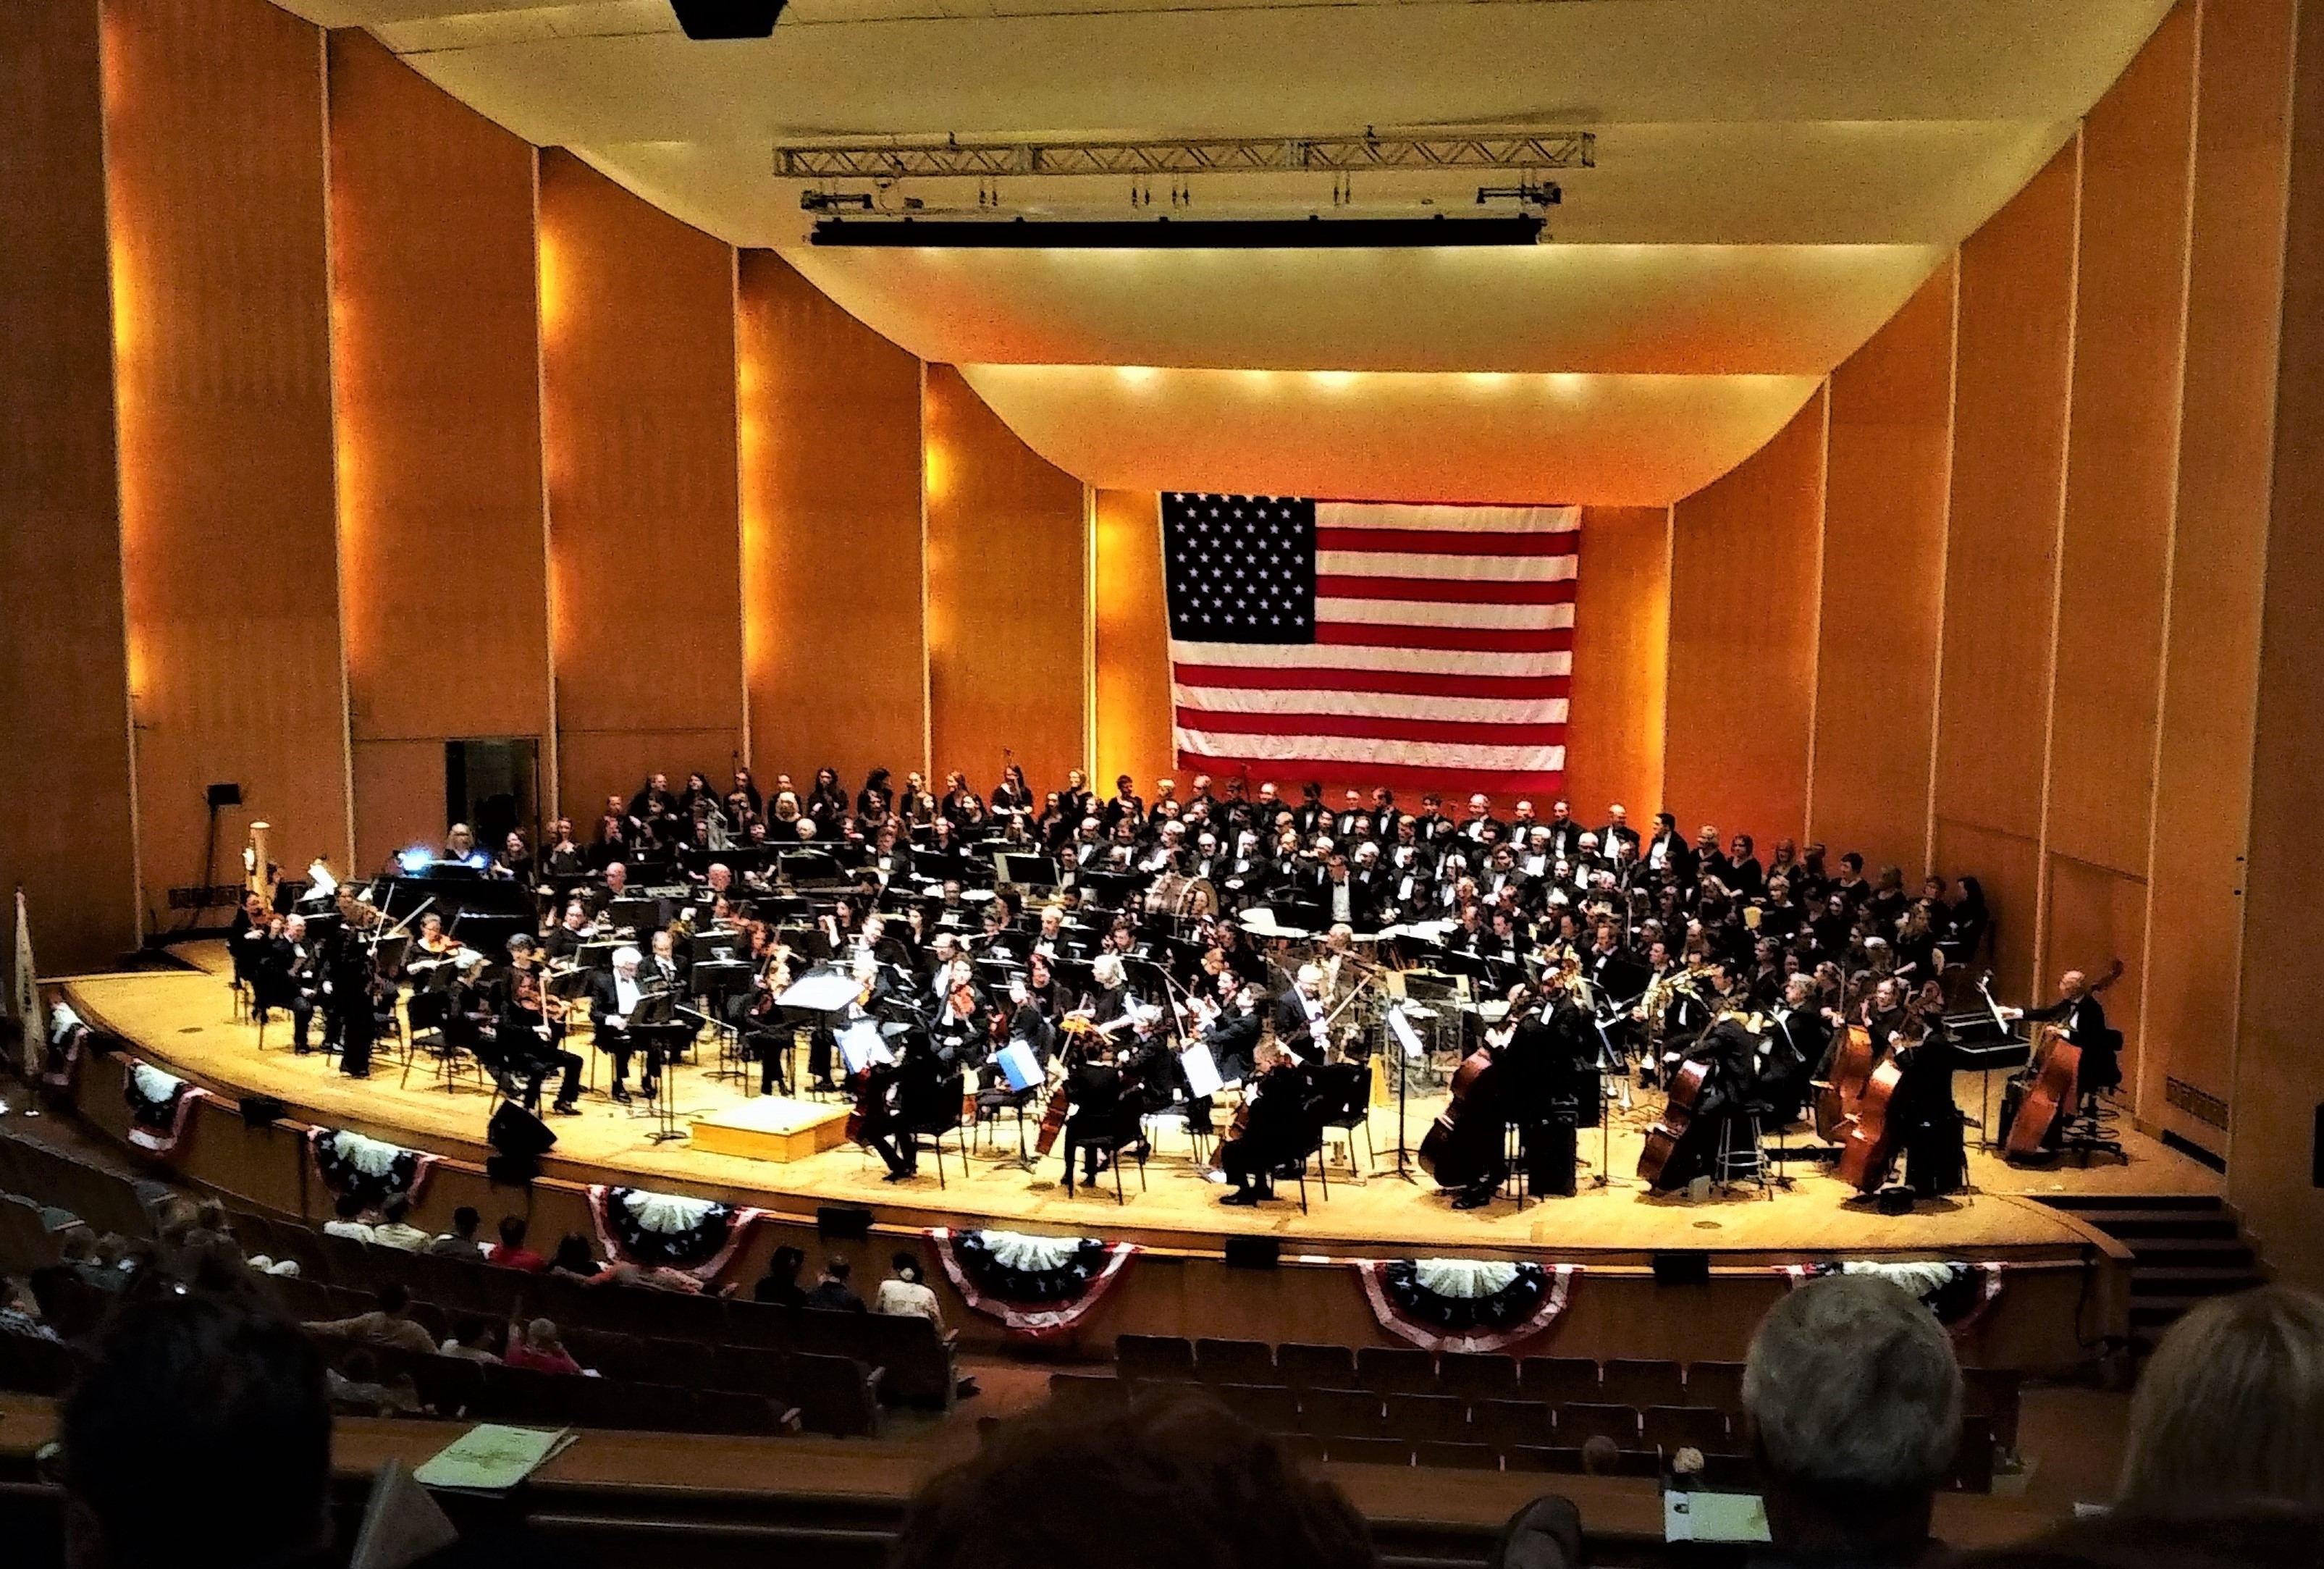 The Buffalo Philharmonic Orchestra and Chorus in [[Kleinhans Music Hall